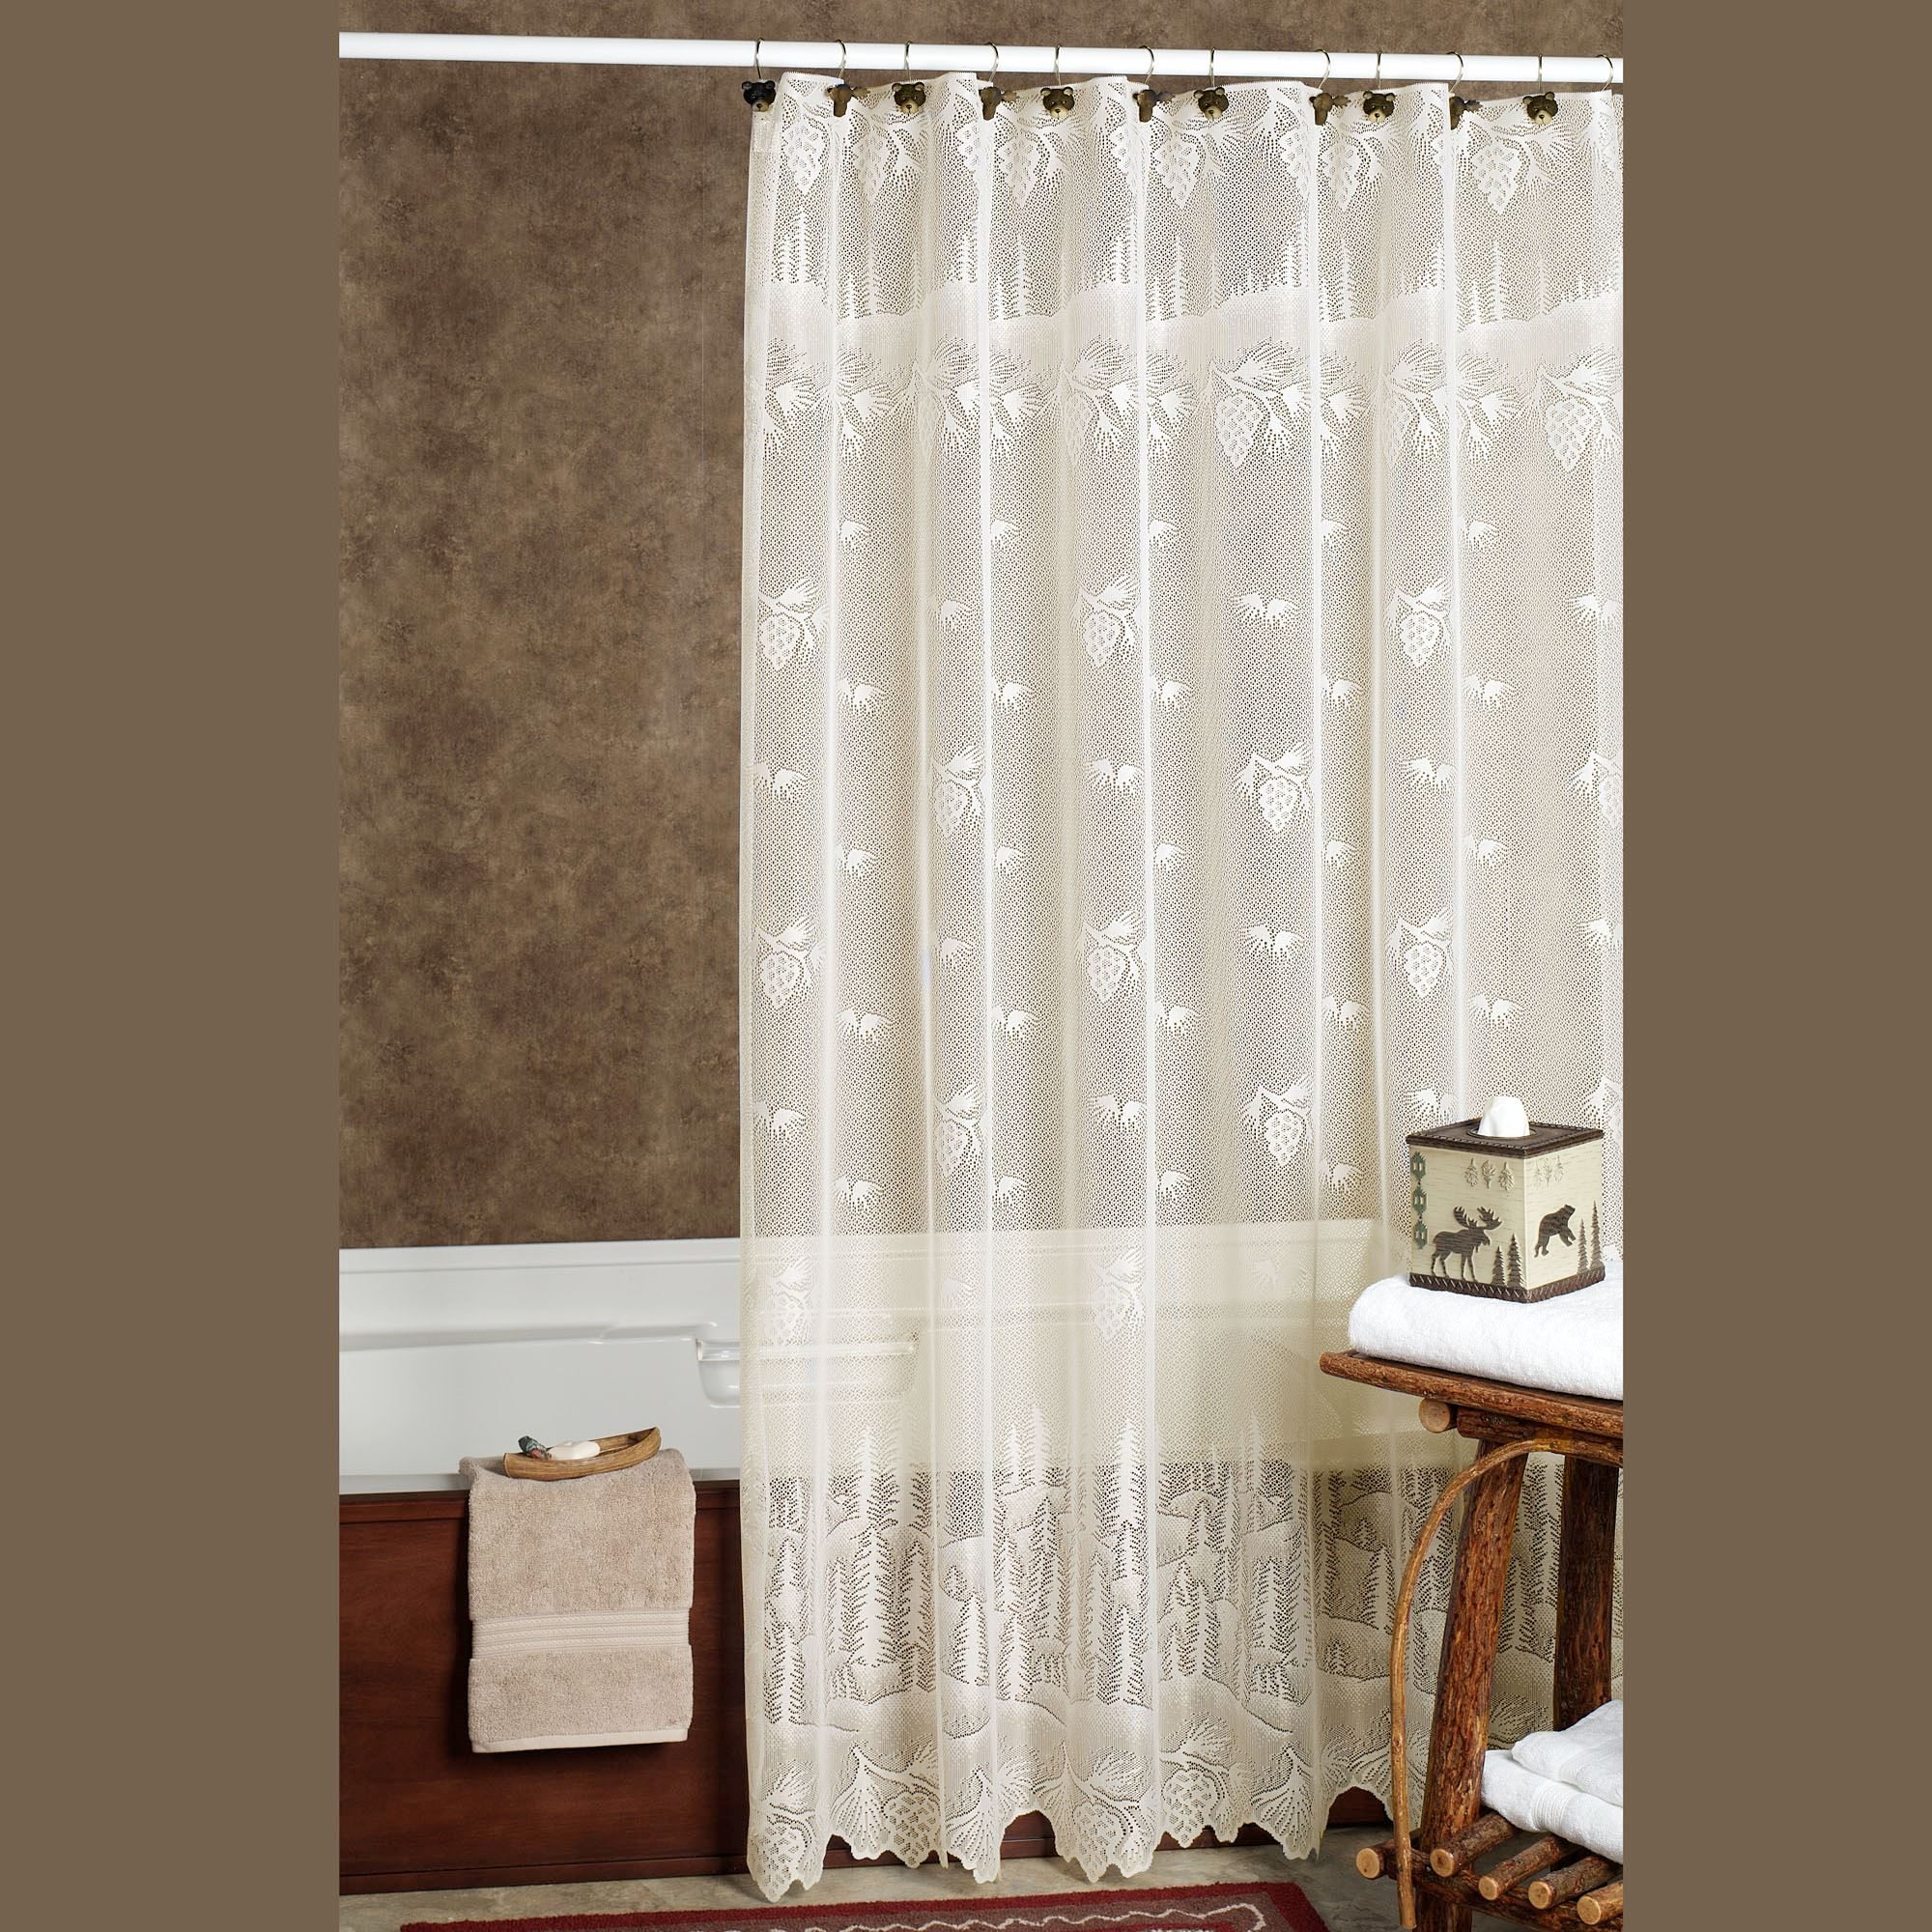 curtain gq upgrages bathroom gallery curtains your to weave shower waffle photos upgrade